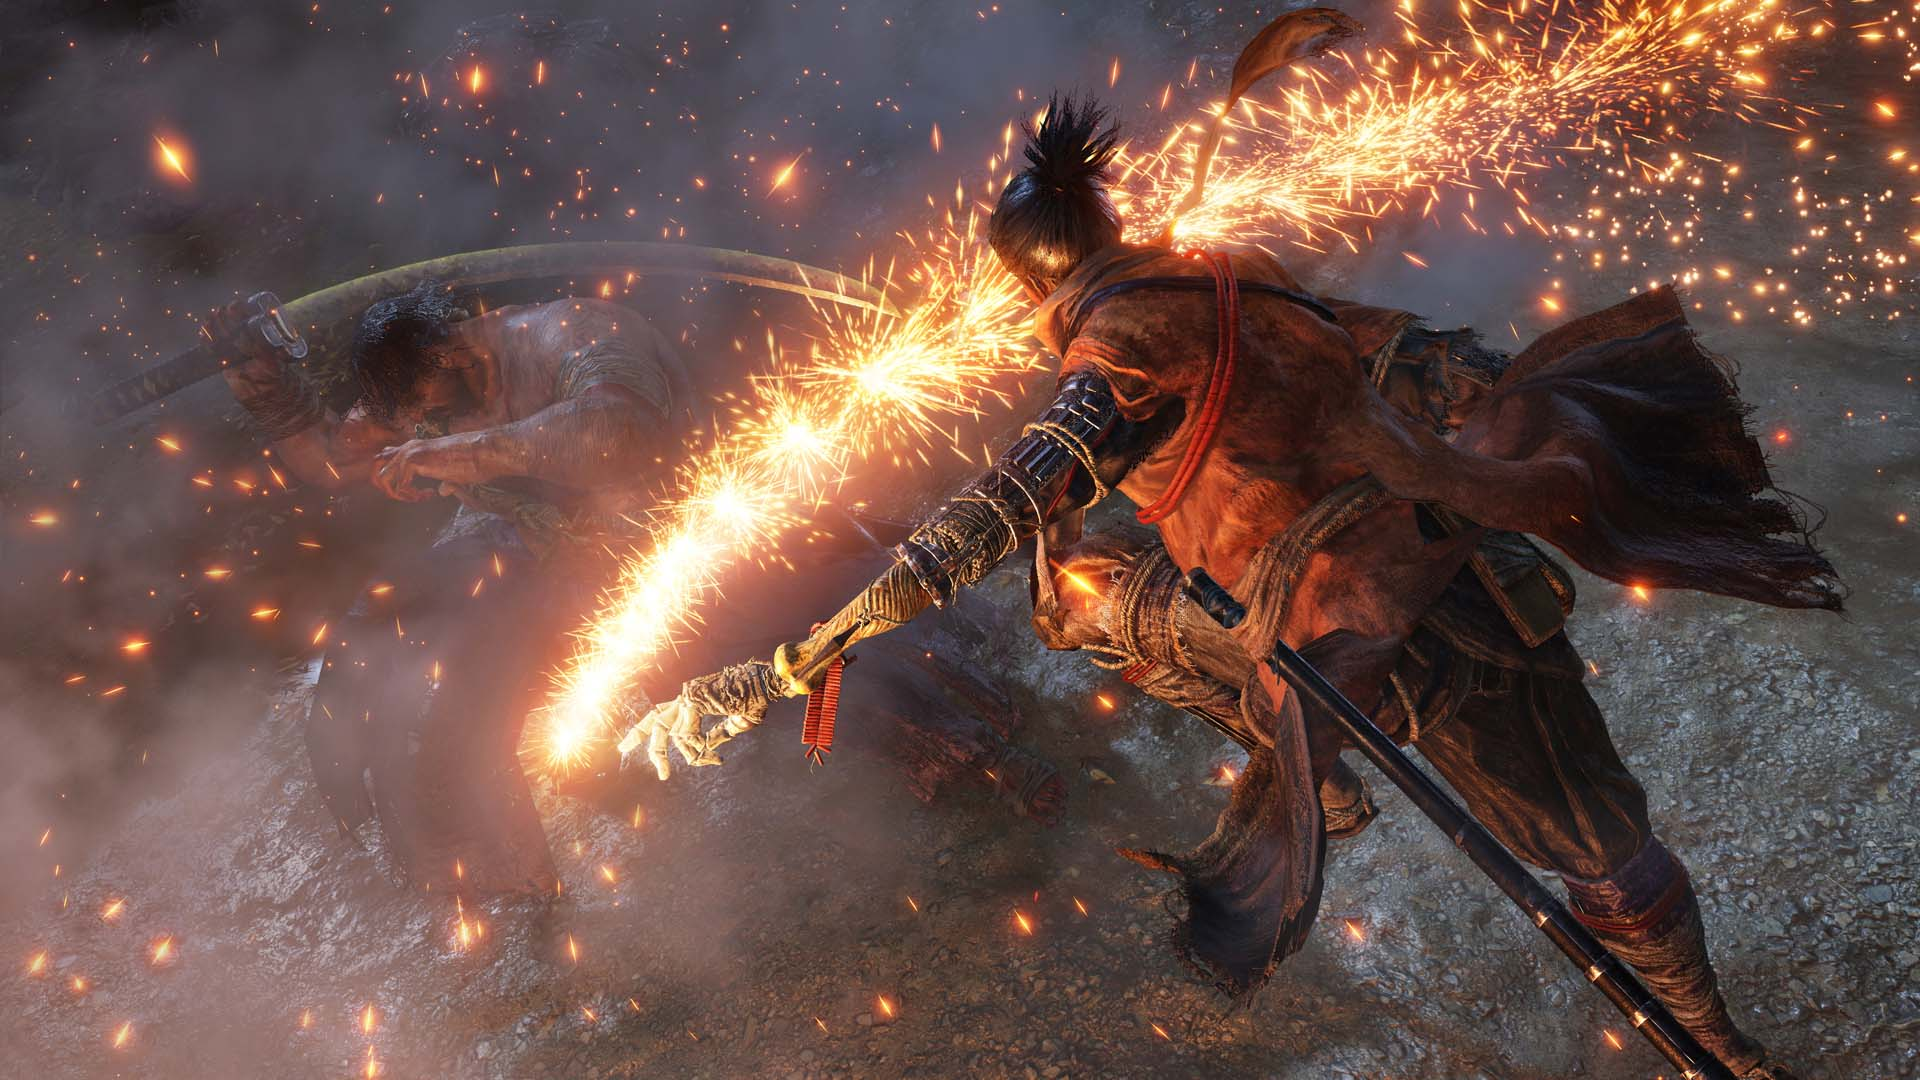 Sekiro Shadows Die Twice Features preview image